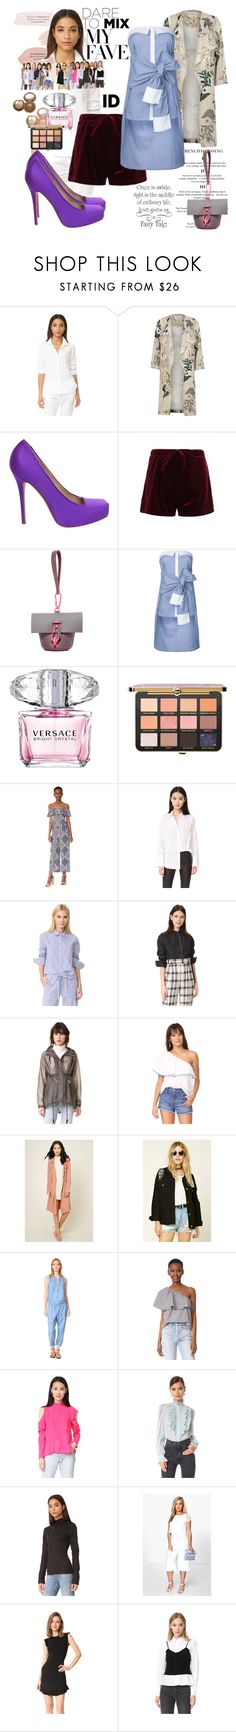 """""""Today Will Be Different"""" by black-wings ❤ liked on Polyvore featuring Xirena, River Island, Alexander McQueen, ZAC Zac Posen, CO/MUN, Too Faced Cosmetics, Versace, L'Agence, The Fifth Label and Anine Bing"""